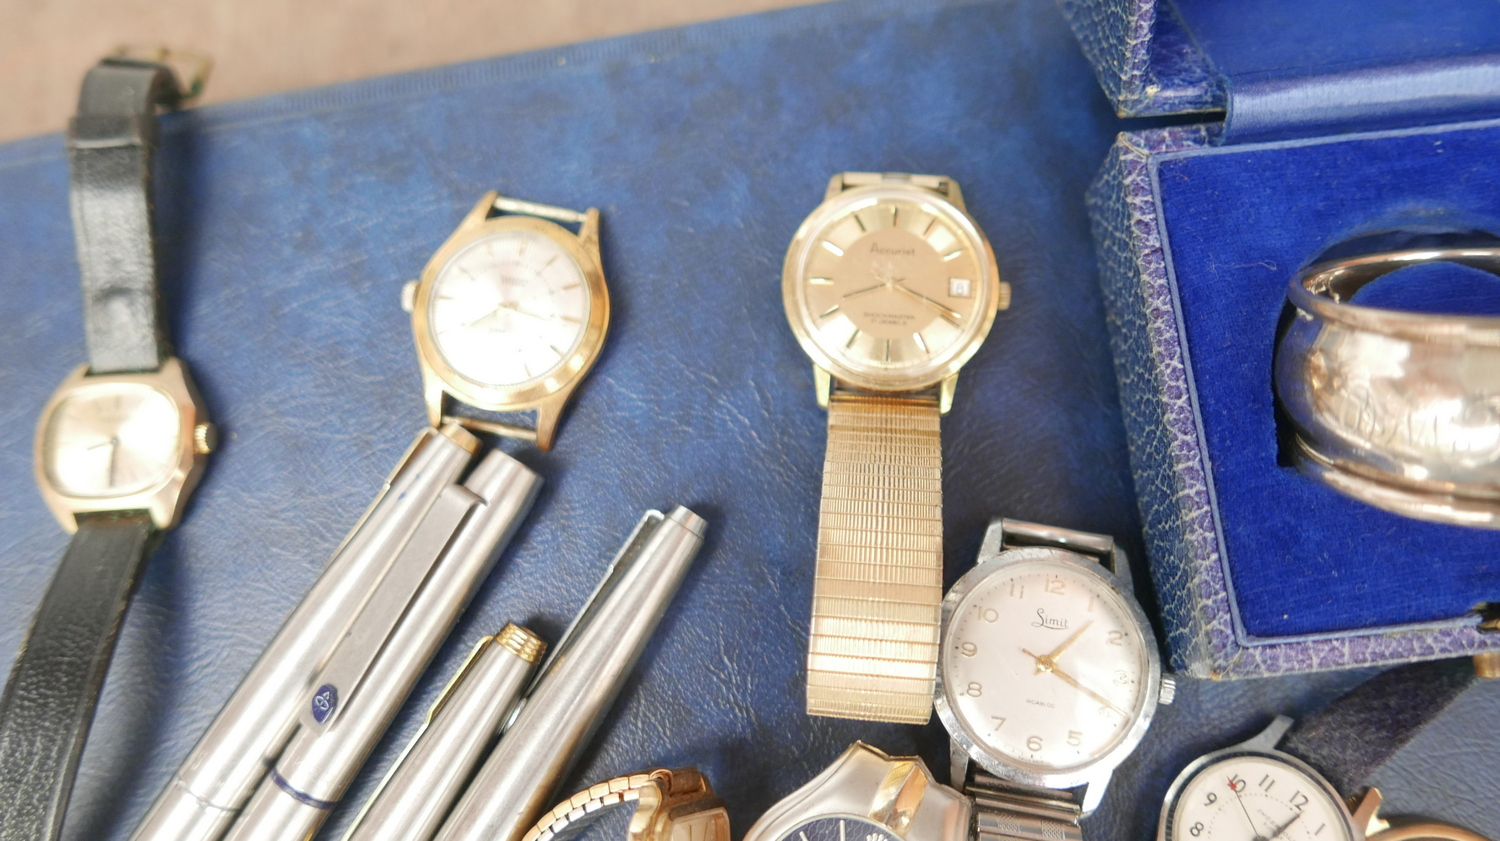 Lot 50T - Lot of Parker Fountain Pens - Vintage Watches - Silver Napkin Ring.